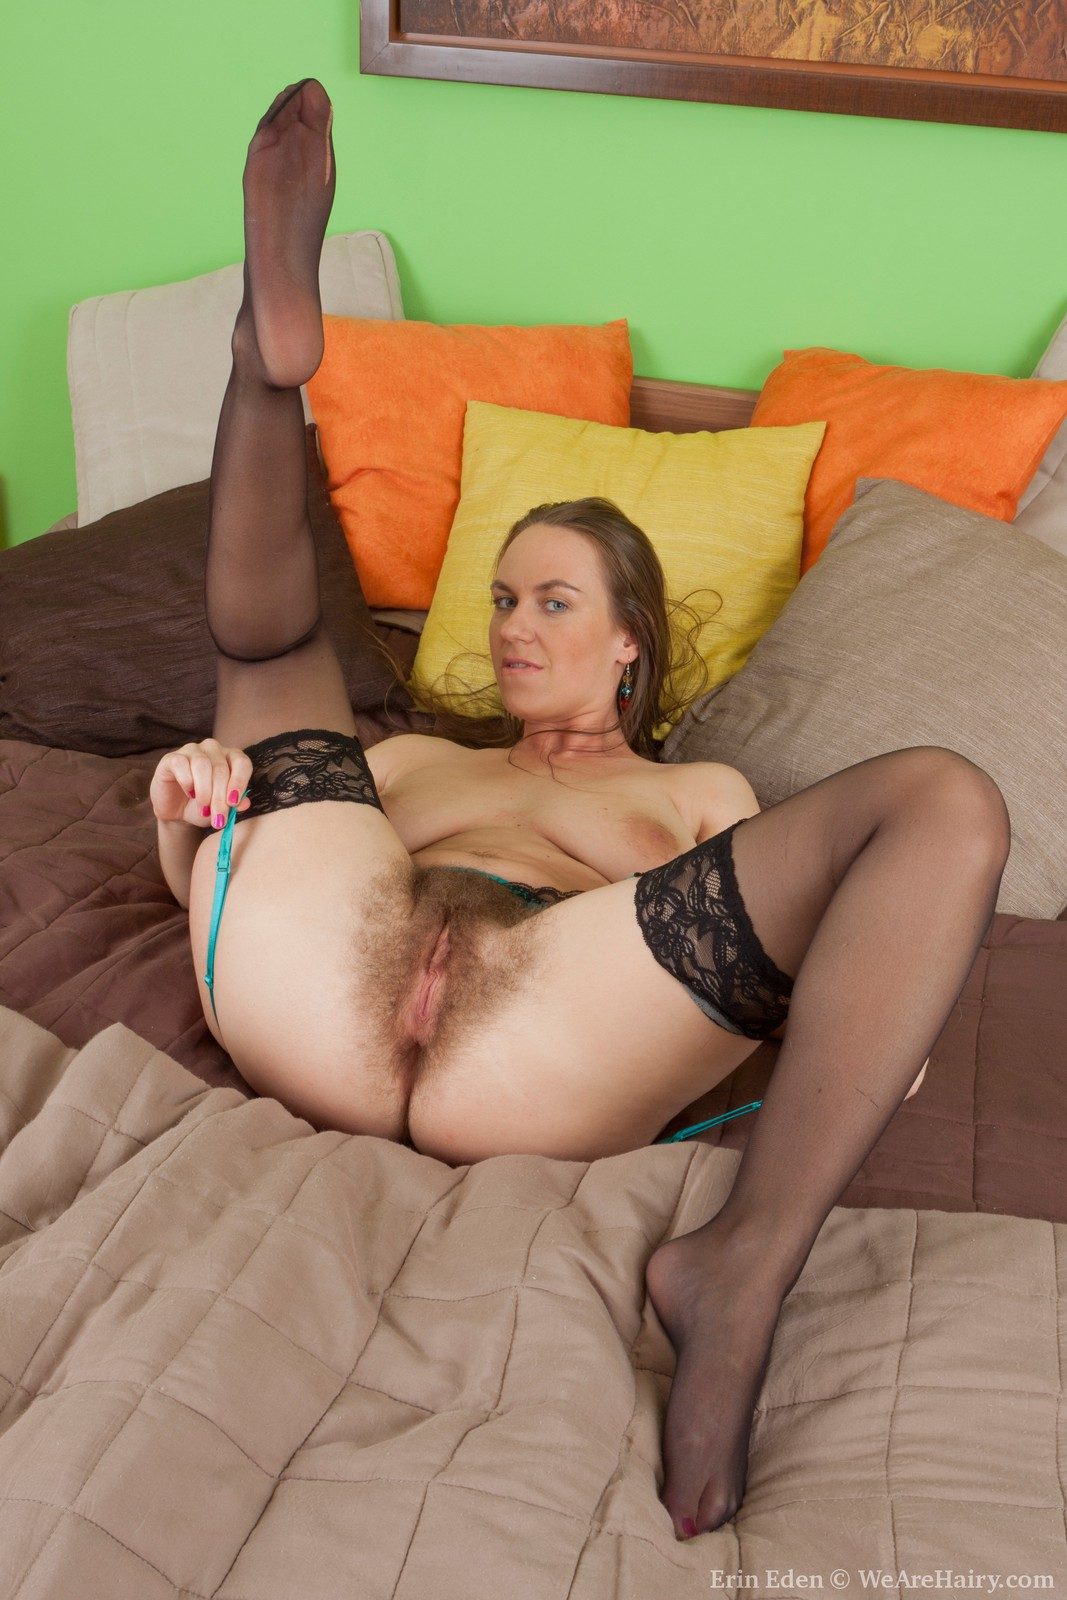 Entertaining message Hairy pussy milfs